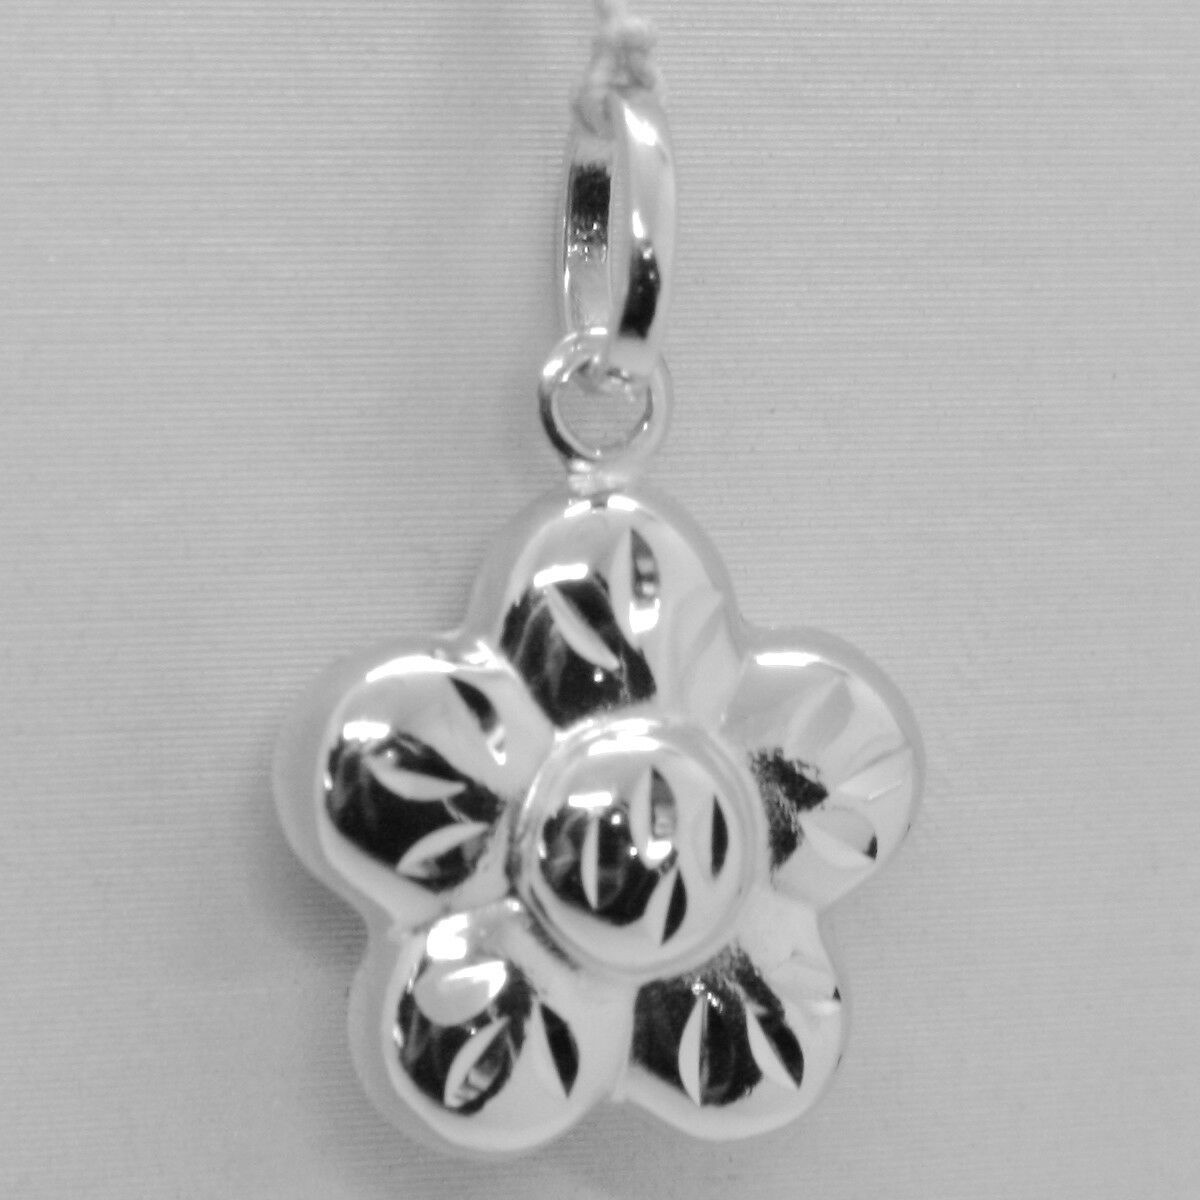 18K WHITE GOLD ROUNDED FLOWER DAISY PENDANT CHARM 22 MM SMOOTH MADE IN ITALY